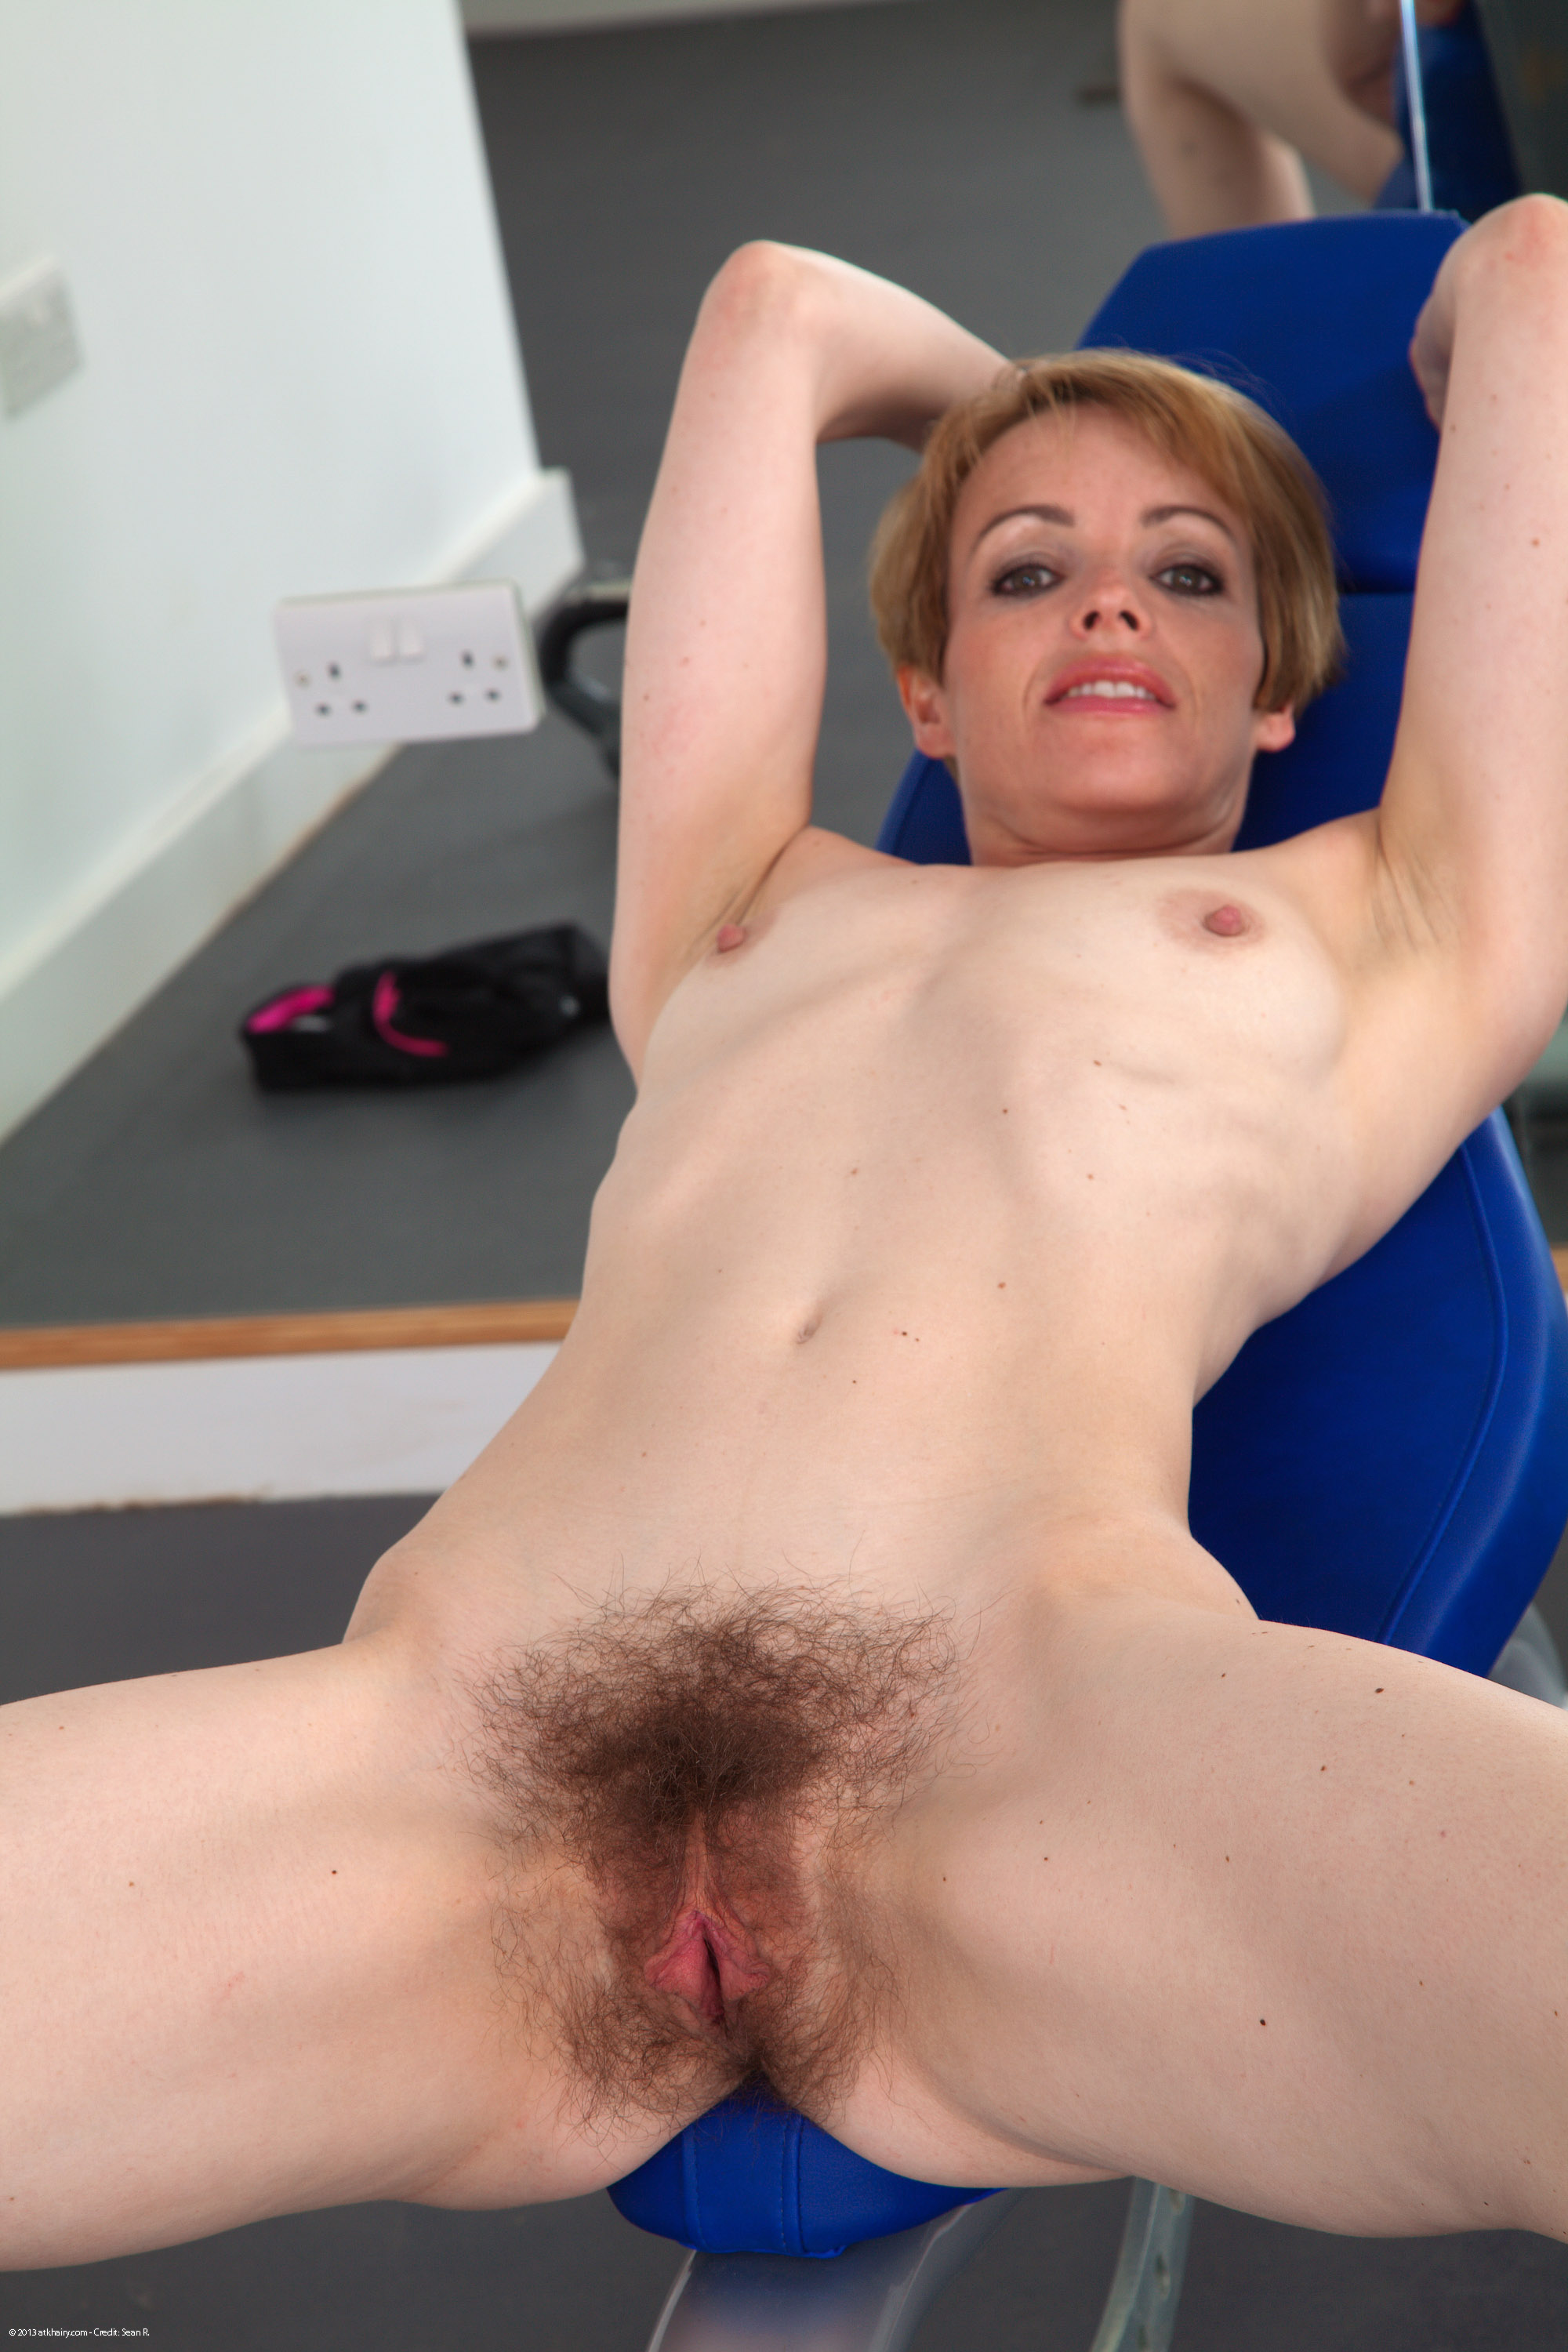 hairy pussy only